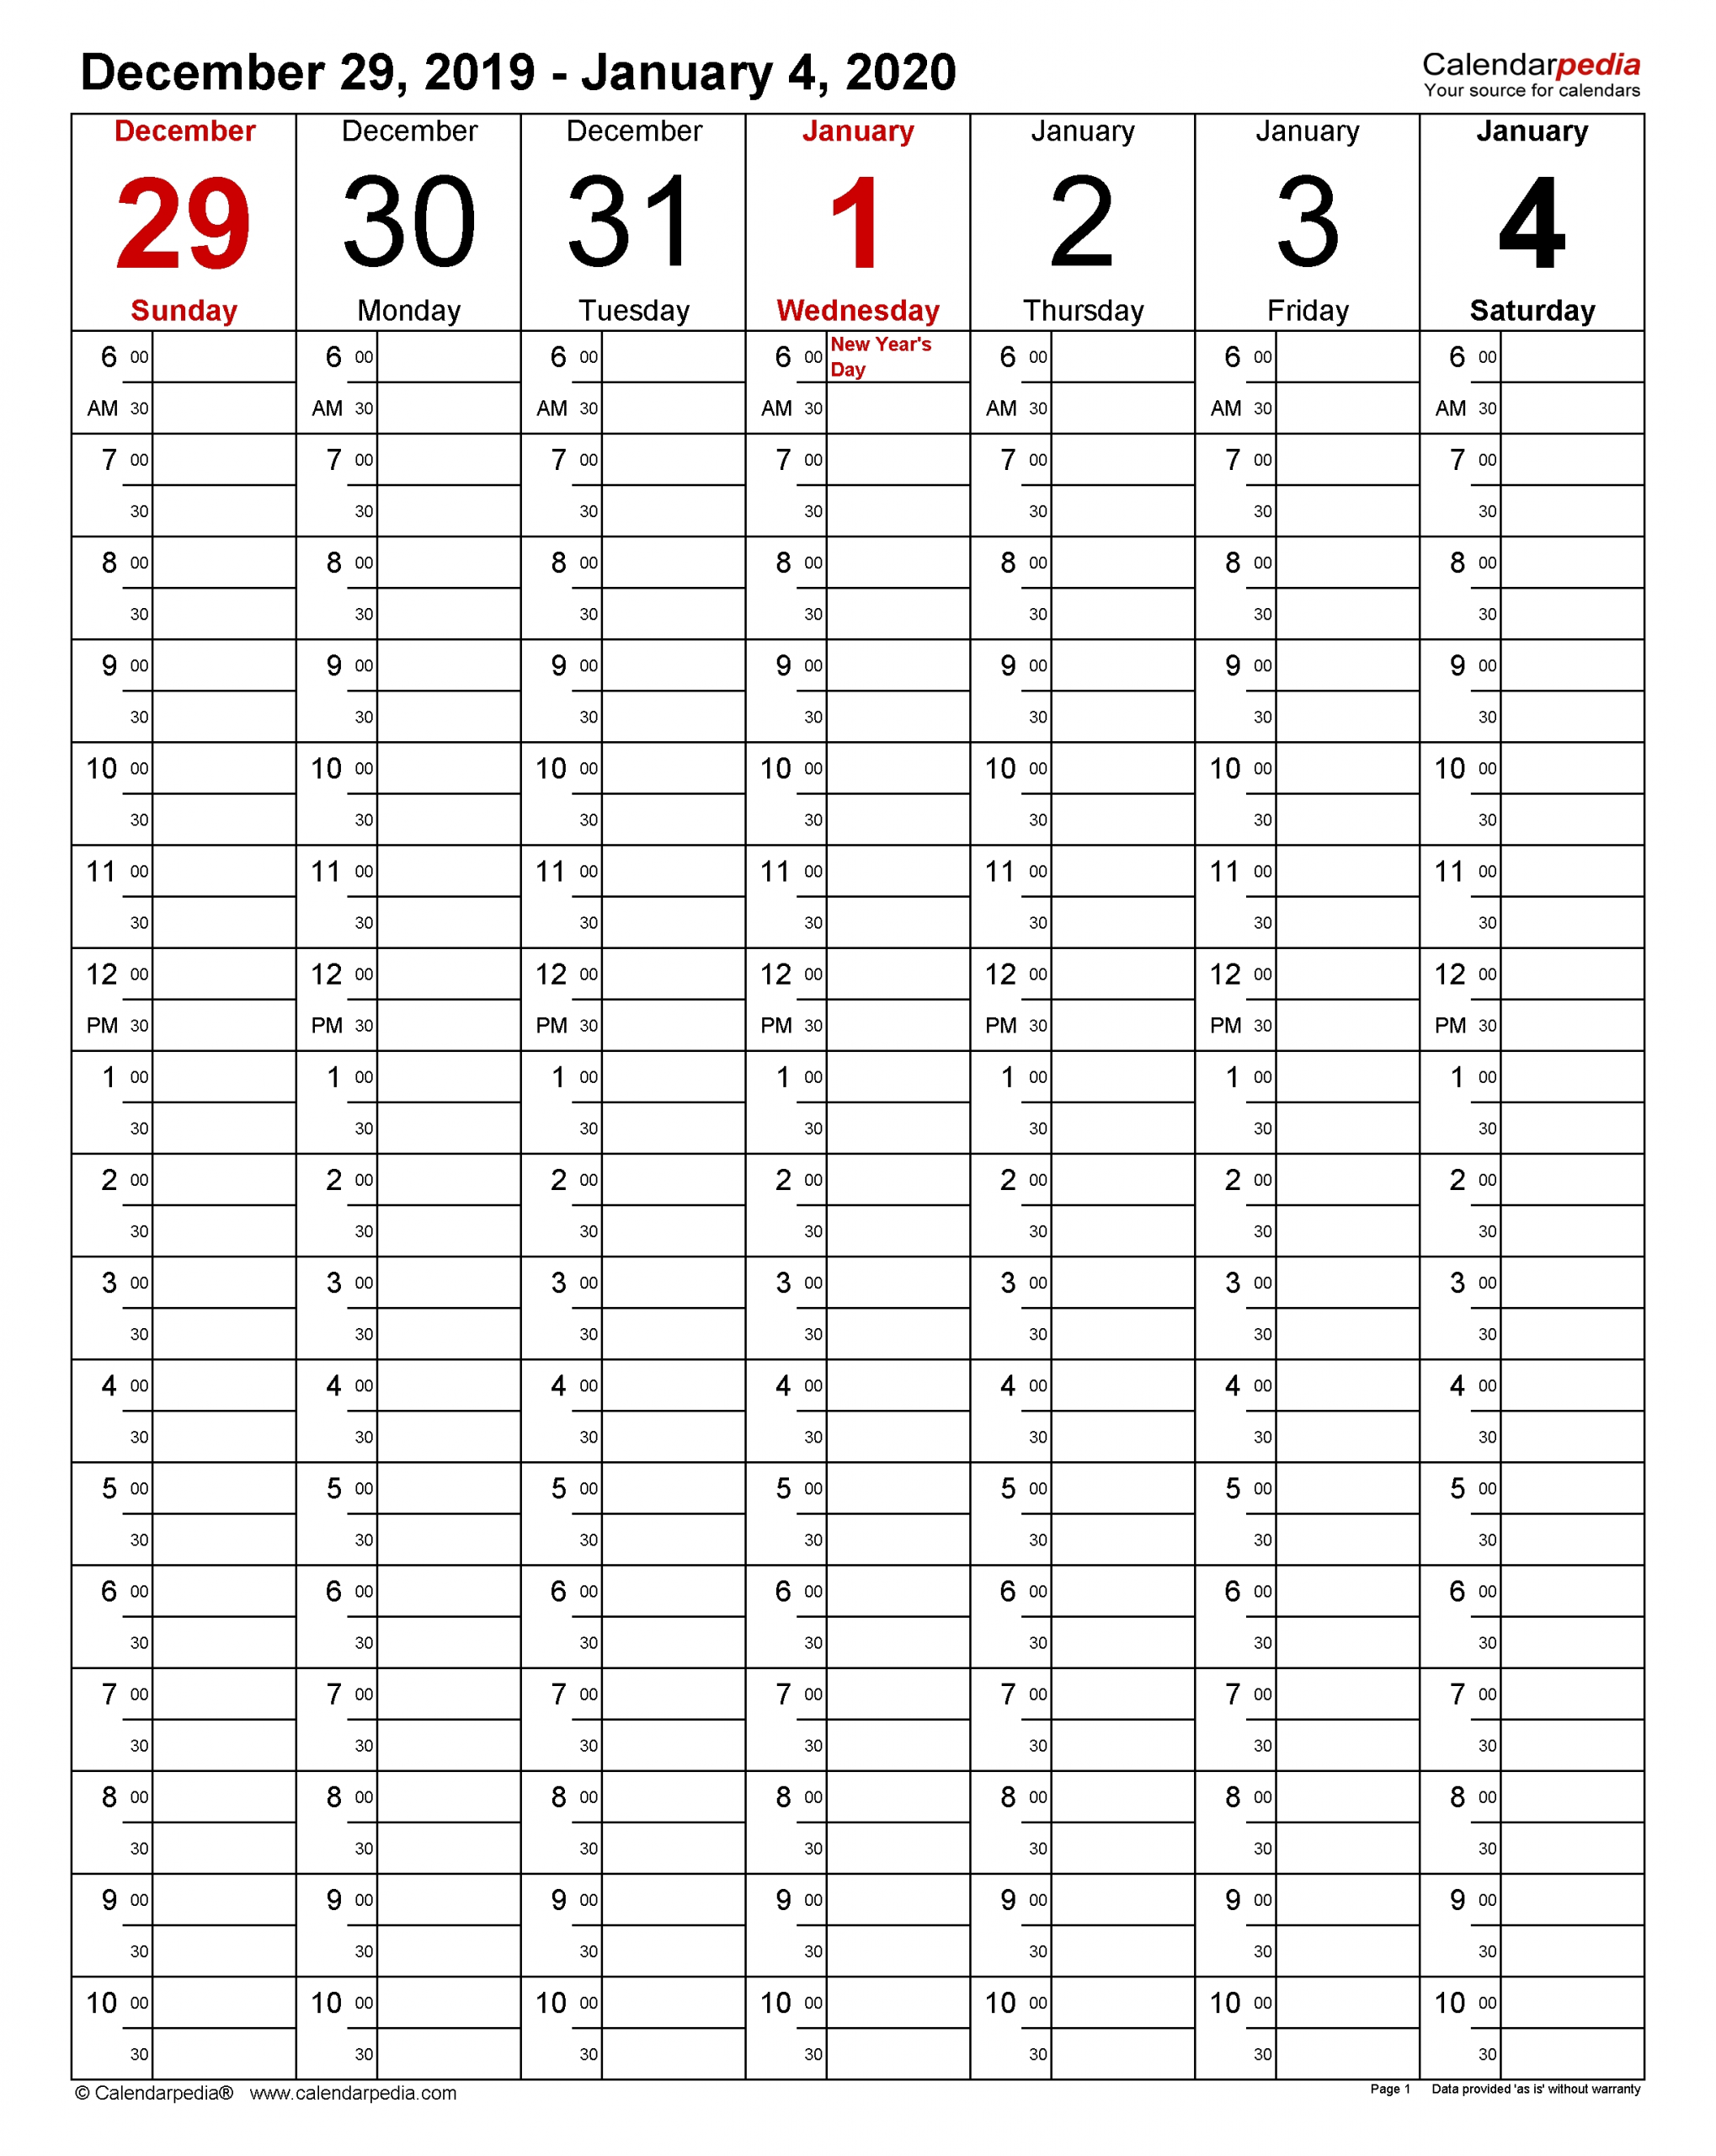 Weekly Calendars 2020 For Pdf - 12 Free Printable Templates regarding Year Calendar 2020 With Space To Write Int